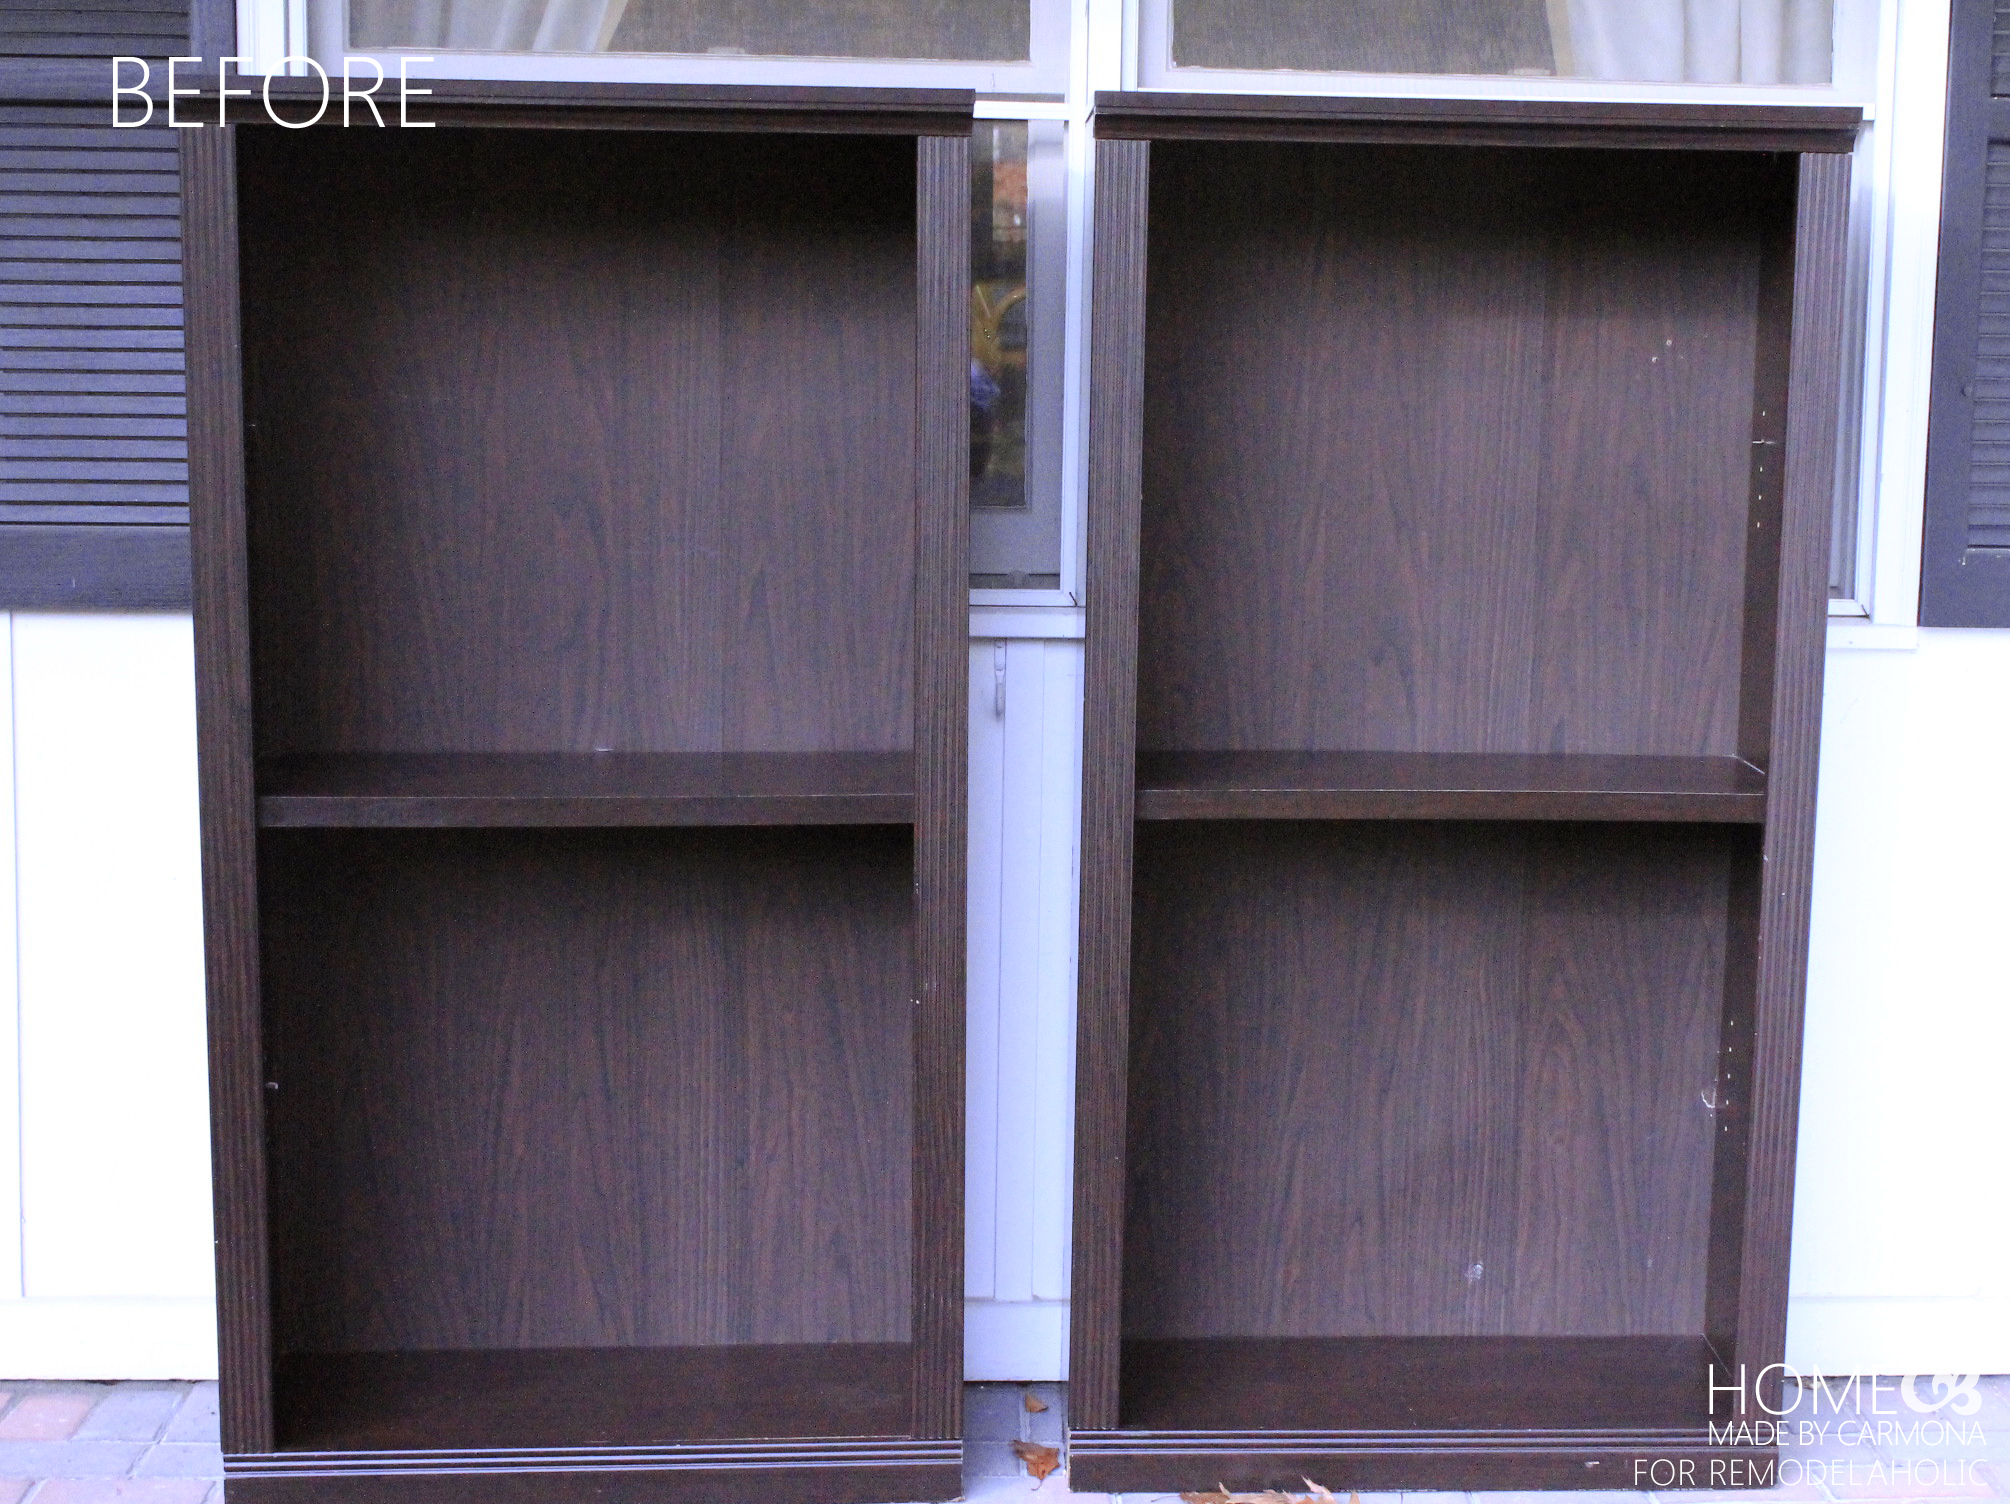 Bookcases Before  HMBC For Remodelaholic